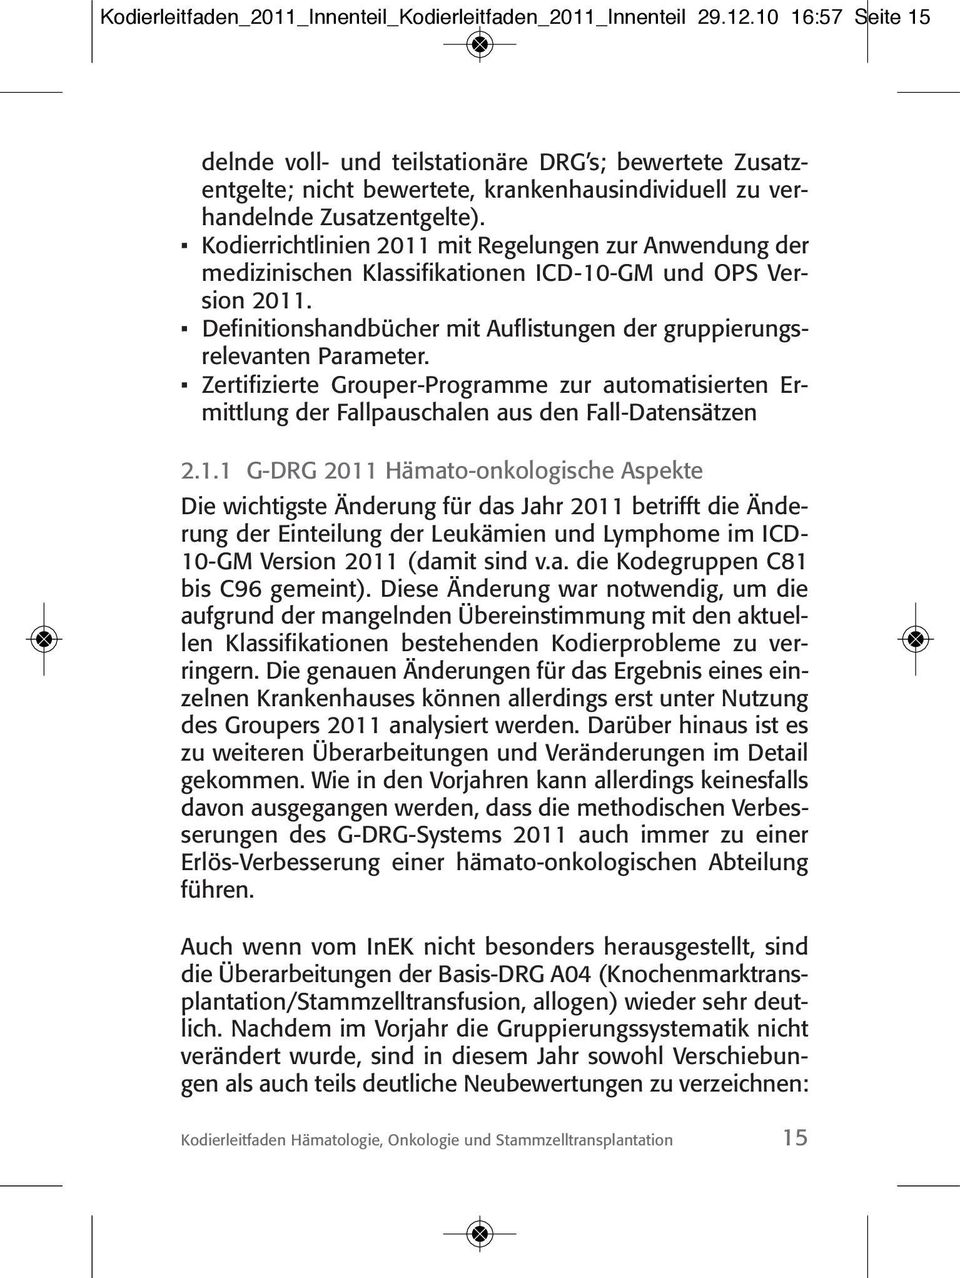 Kodierrichtlinien 2011 mit Regelungen zur Anwendung der medizinischen Klassifikationen ICD-10-GM und OPS Version 2011. Definitionshandbücher mit Auflistungen der gruppierungsrelevanten Parameter.